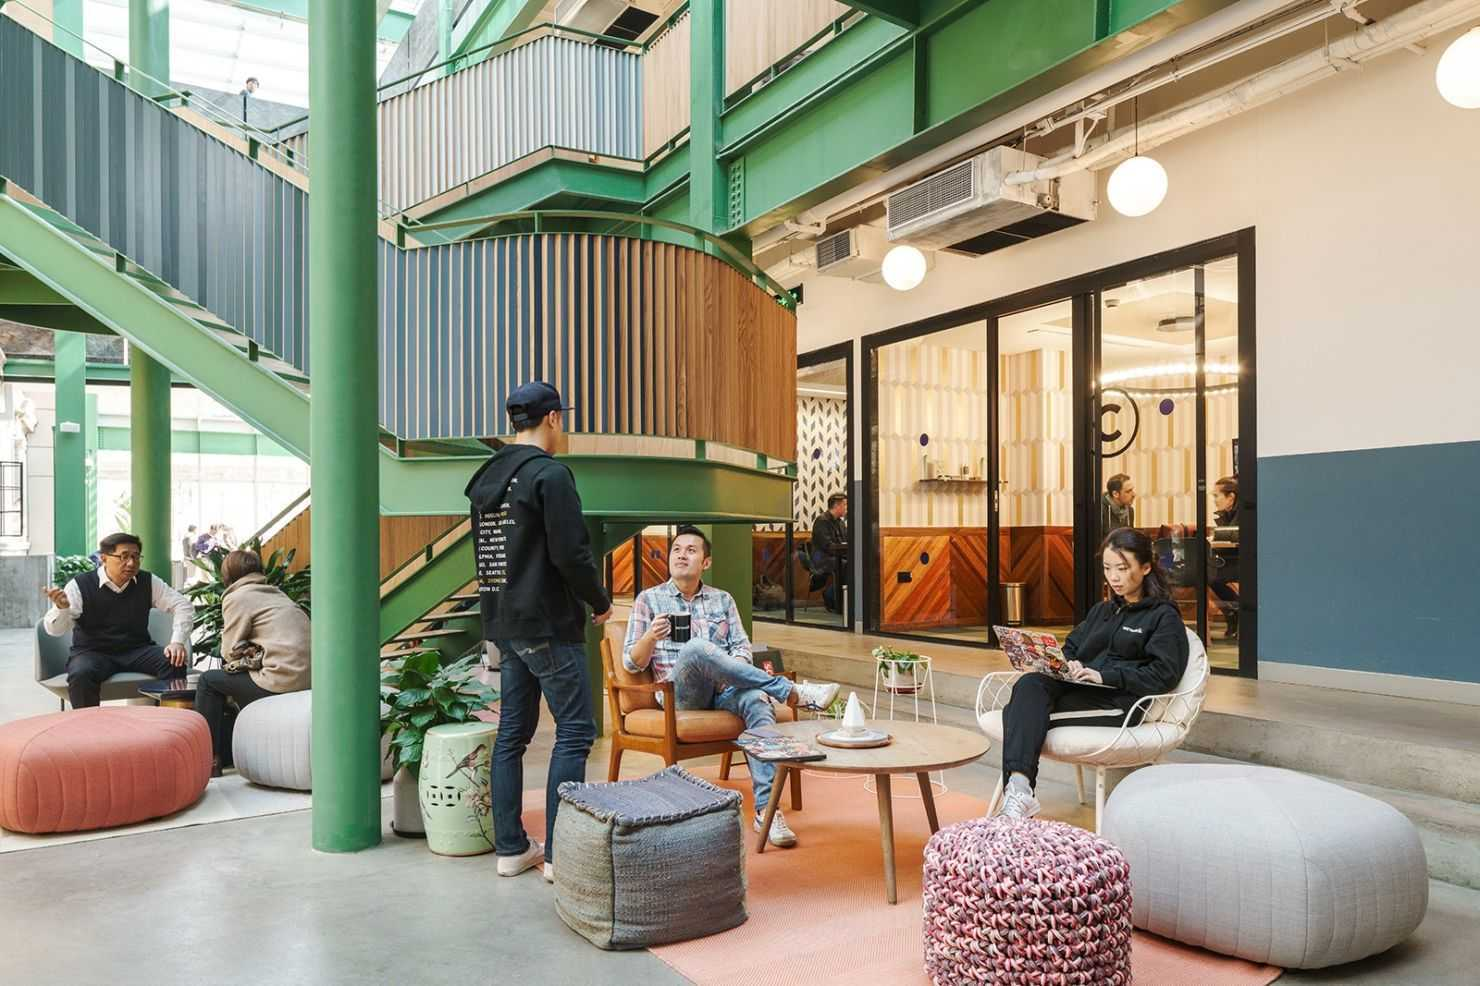 WeWork Co-working Space di Shanghai, China (Sumber: www.officelovin.com)